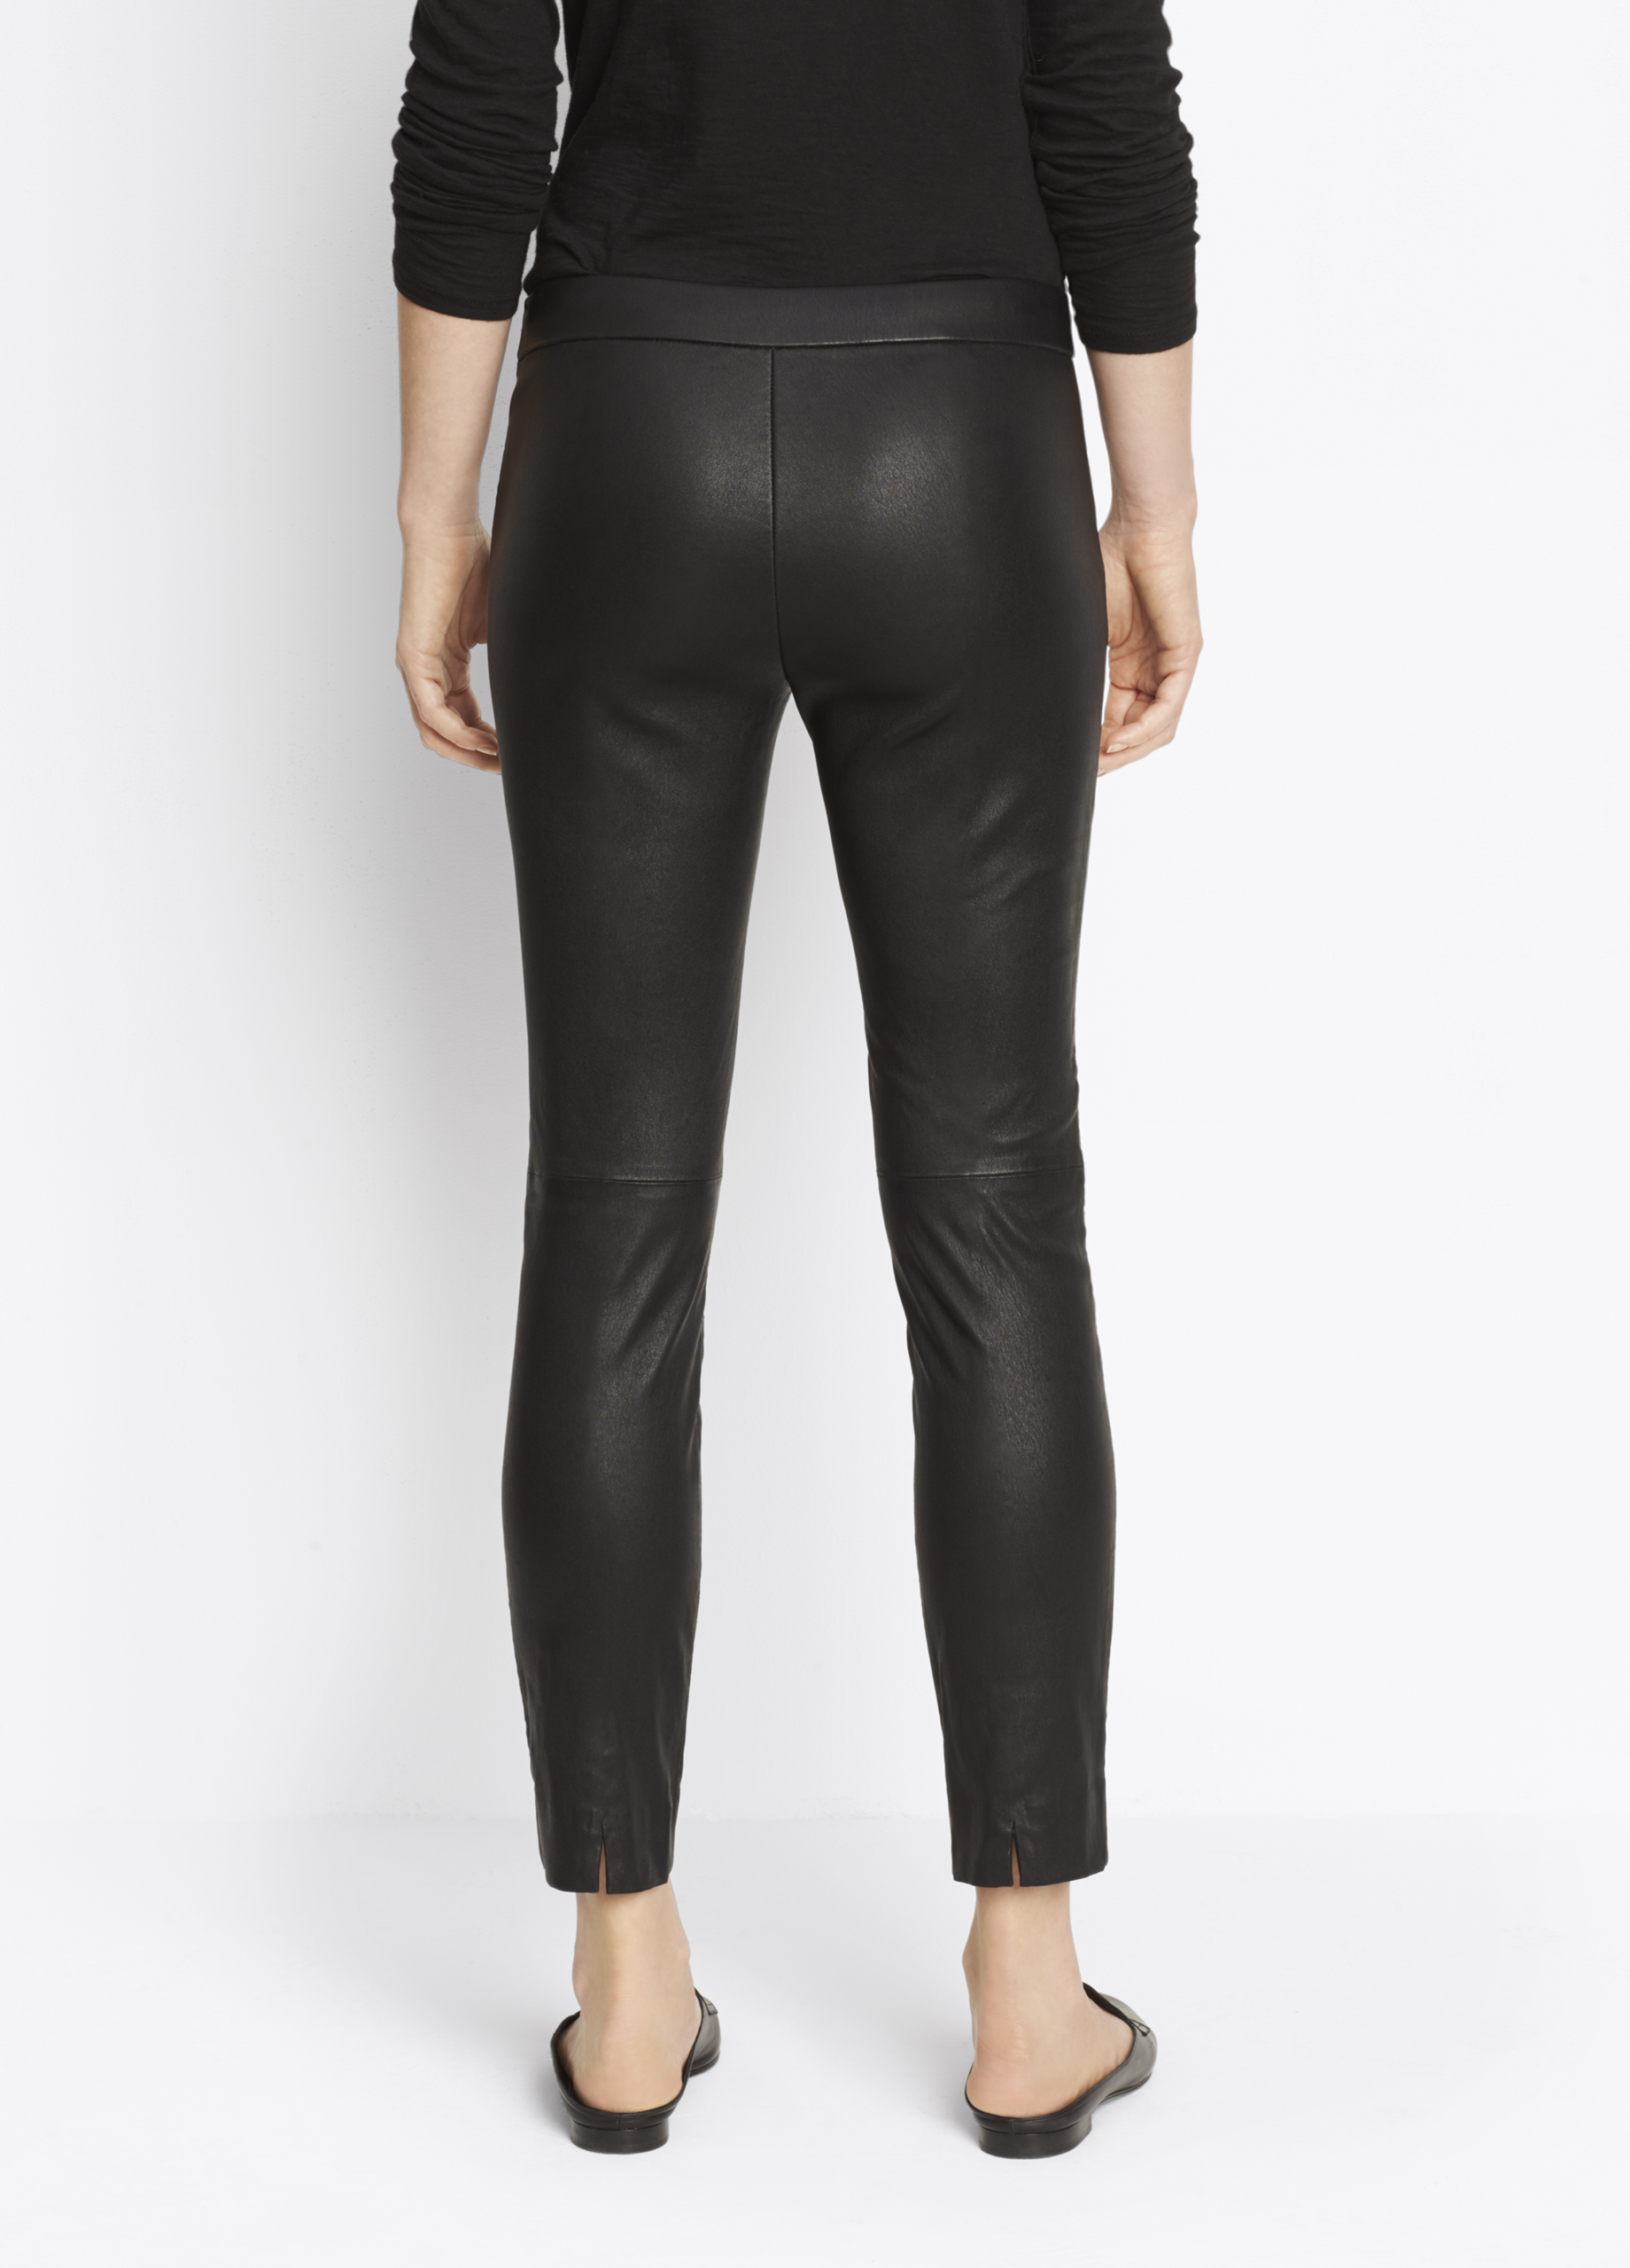 367ea63299abf Leather Legging for Women | Vince